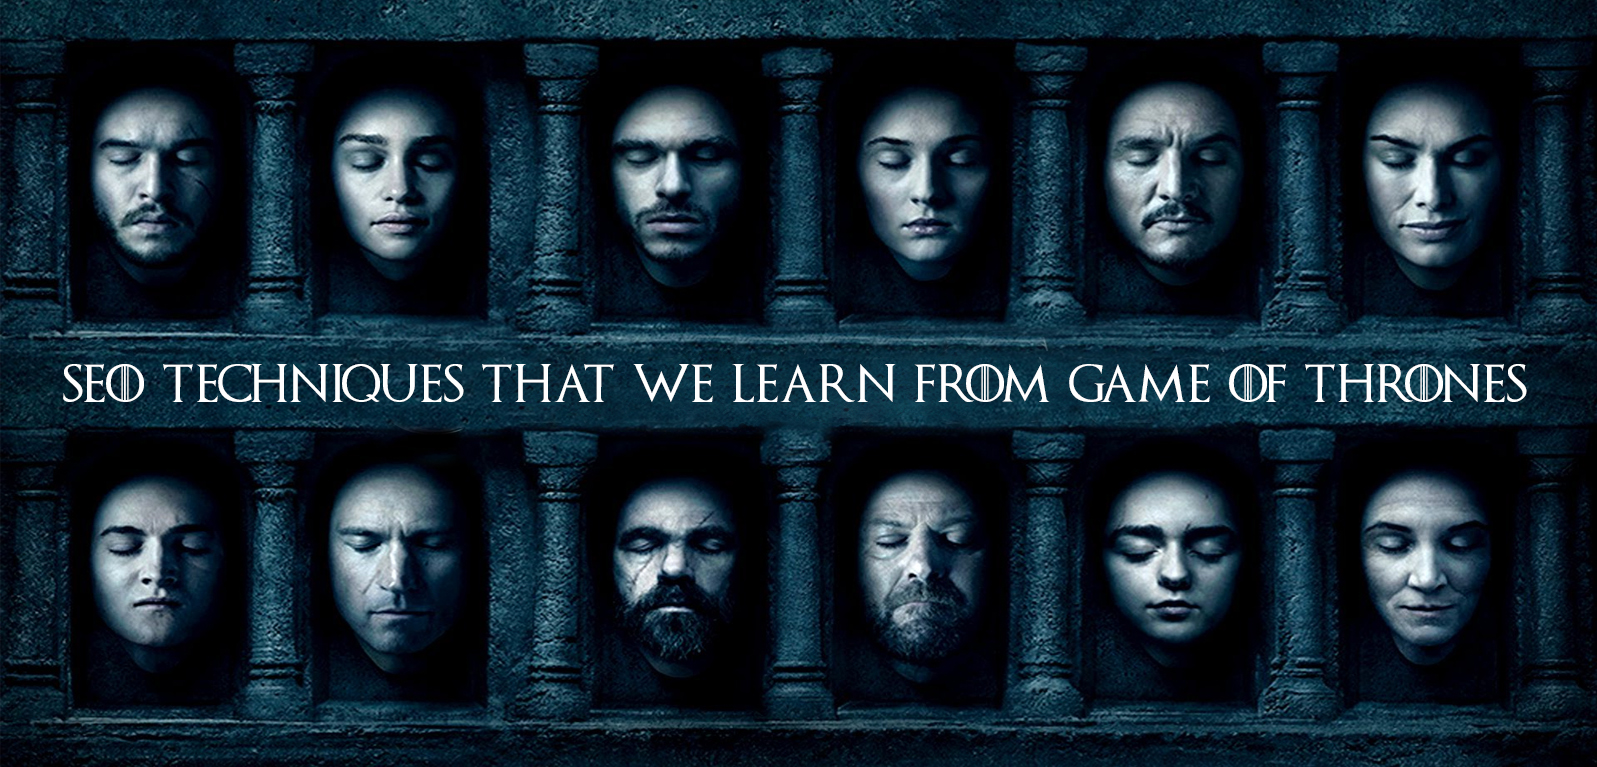 SEO Techniques That We Learn From Game of Thrones